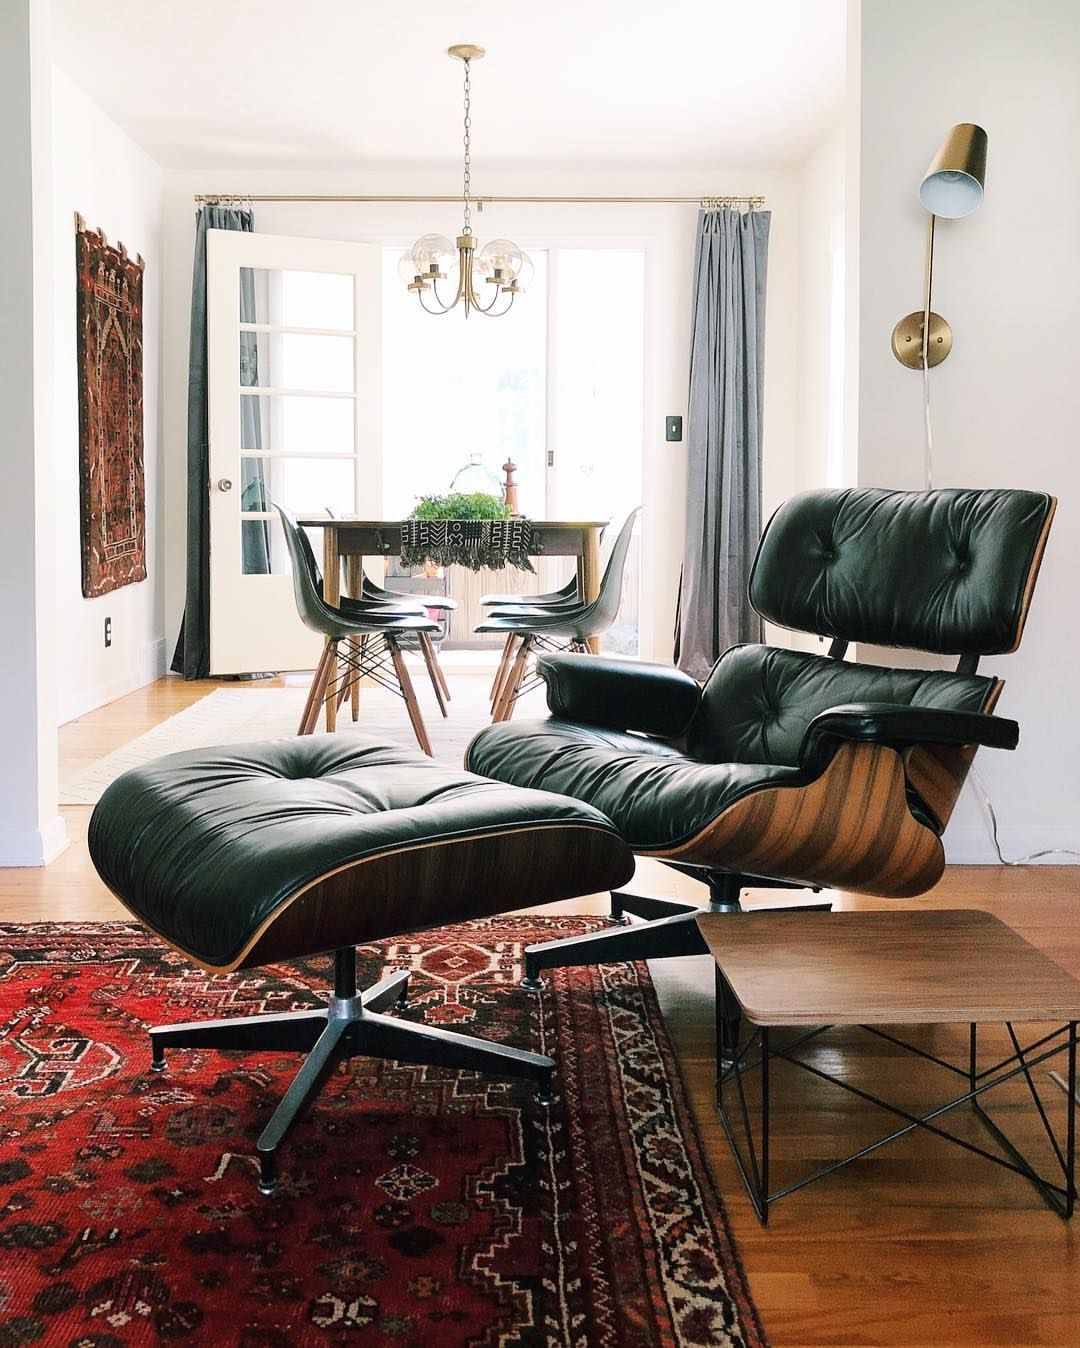 Eames Lounge Chair Living Room many people can't tell if they've come across an authentic